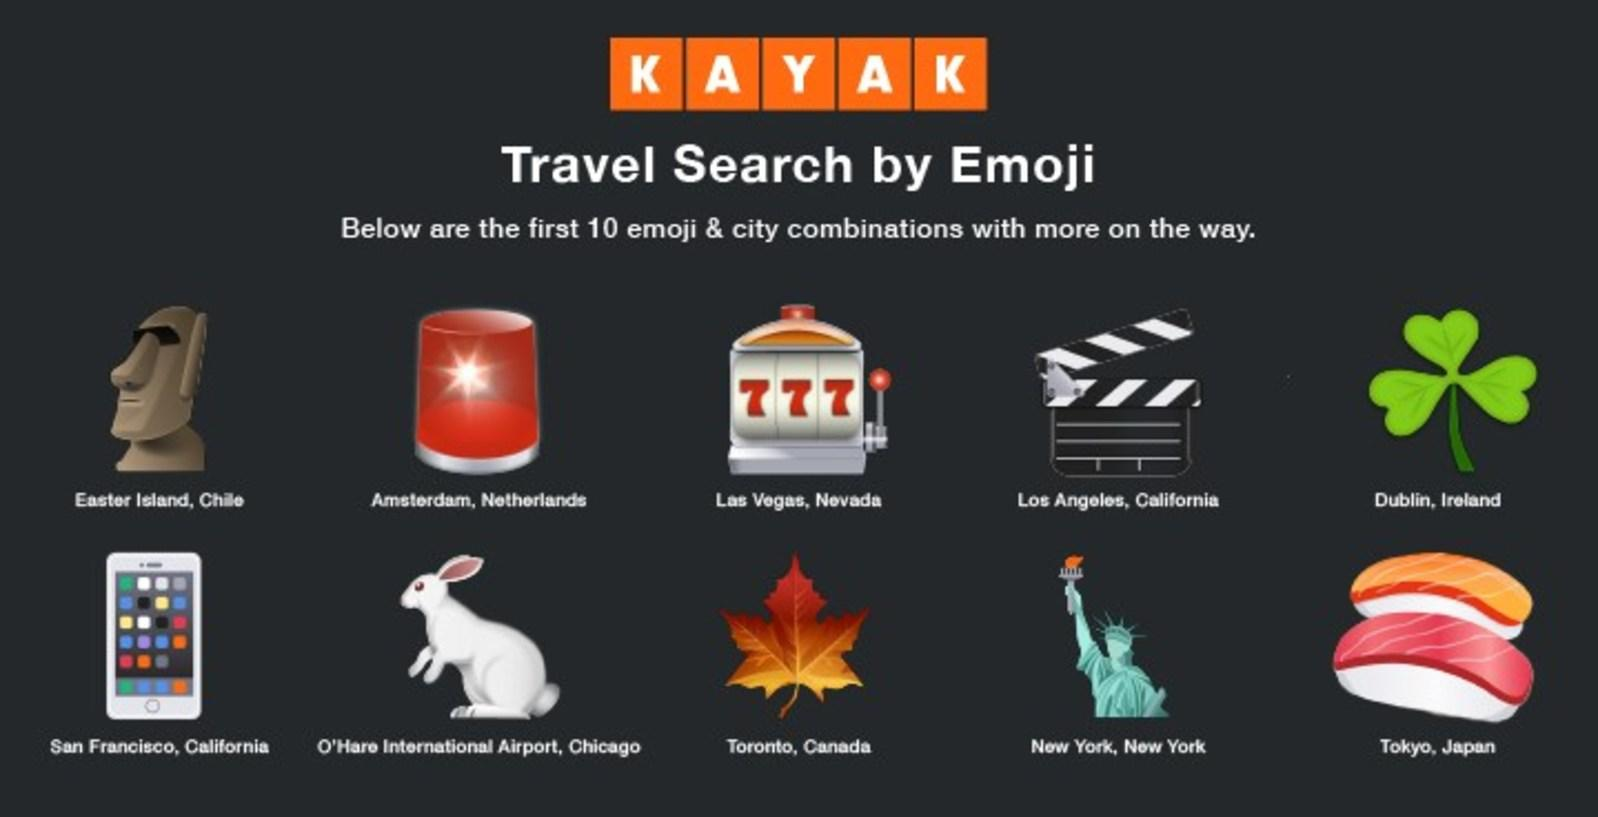 Kayak launches travel searches by emoji